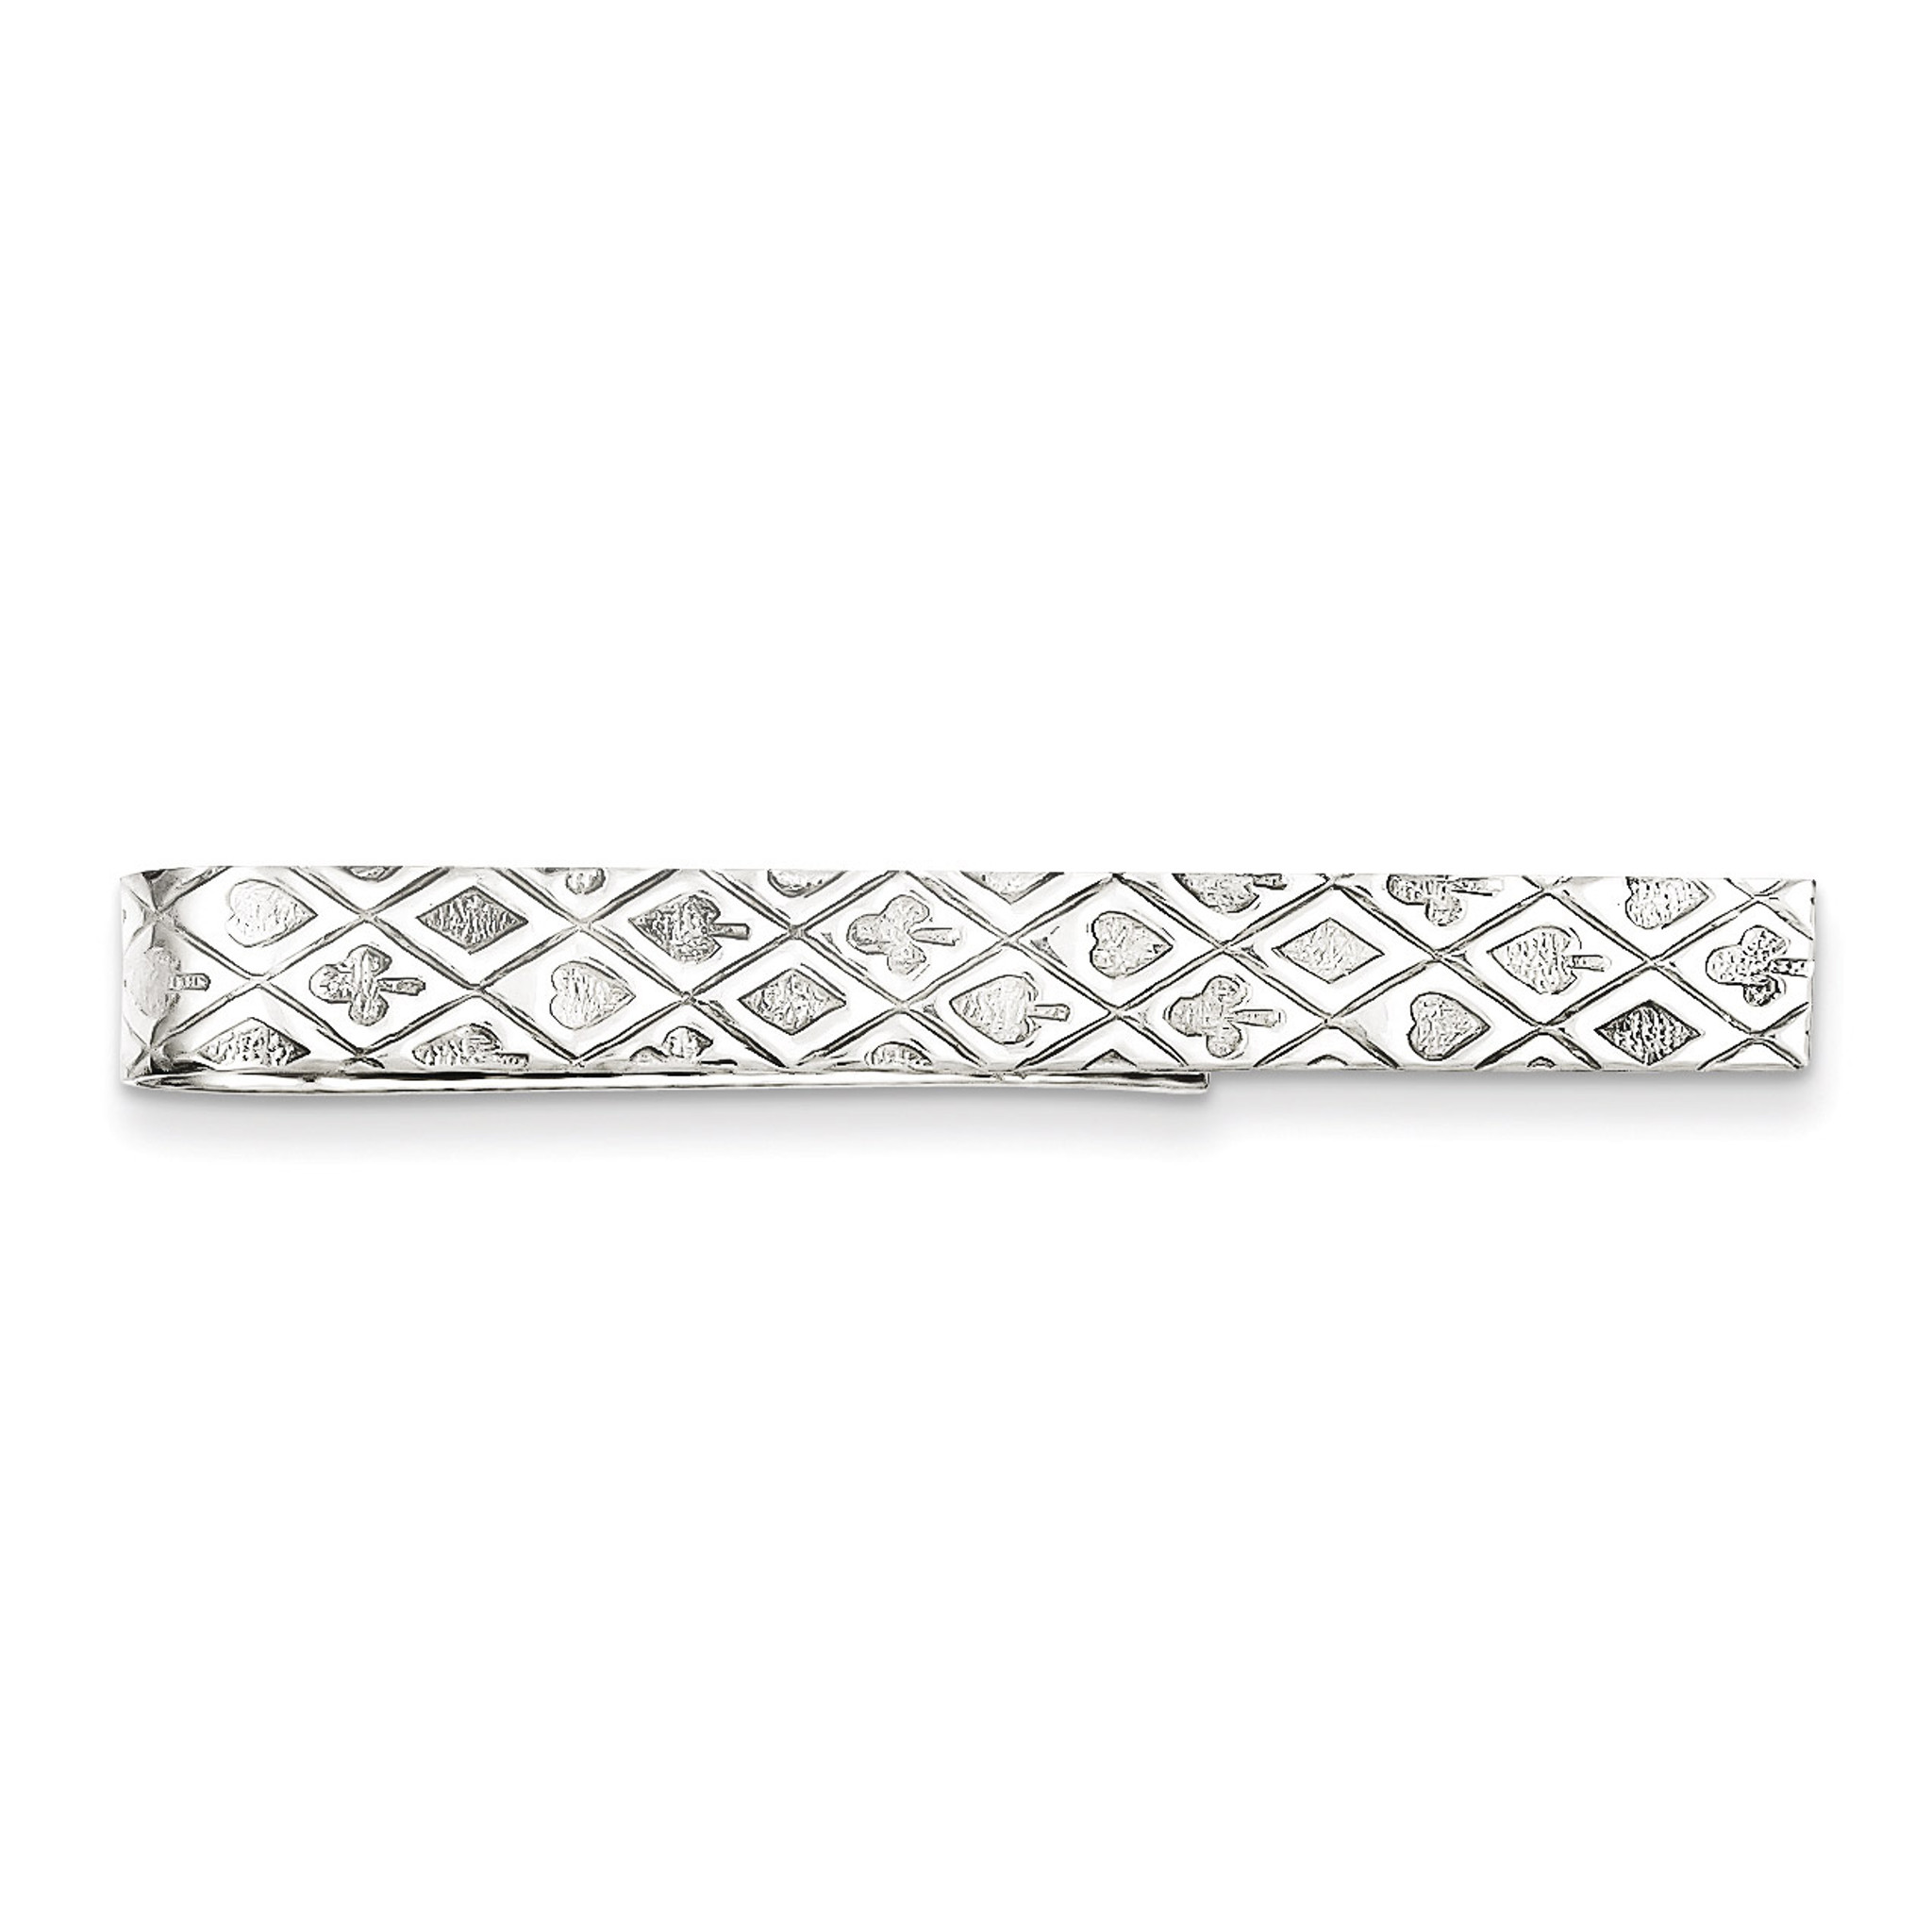 Sterling Silver Mens Accessory Tie Tacs//Tie Bars Solid 7 mm 50 mm Tie Bar